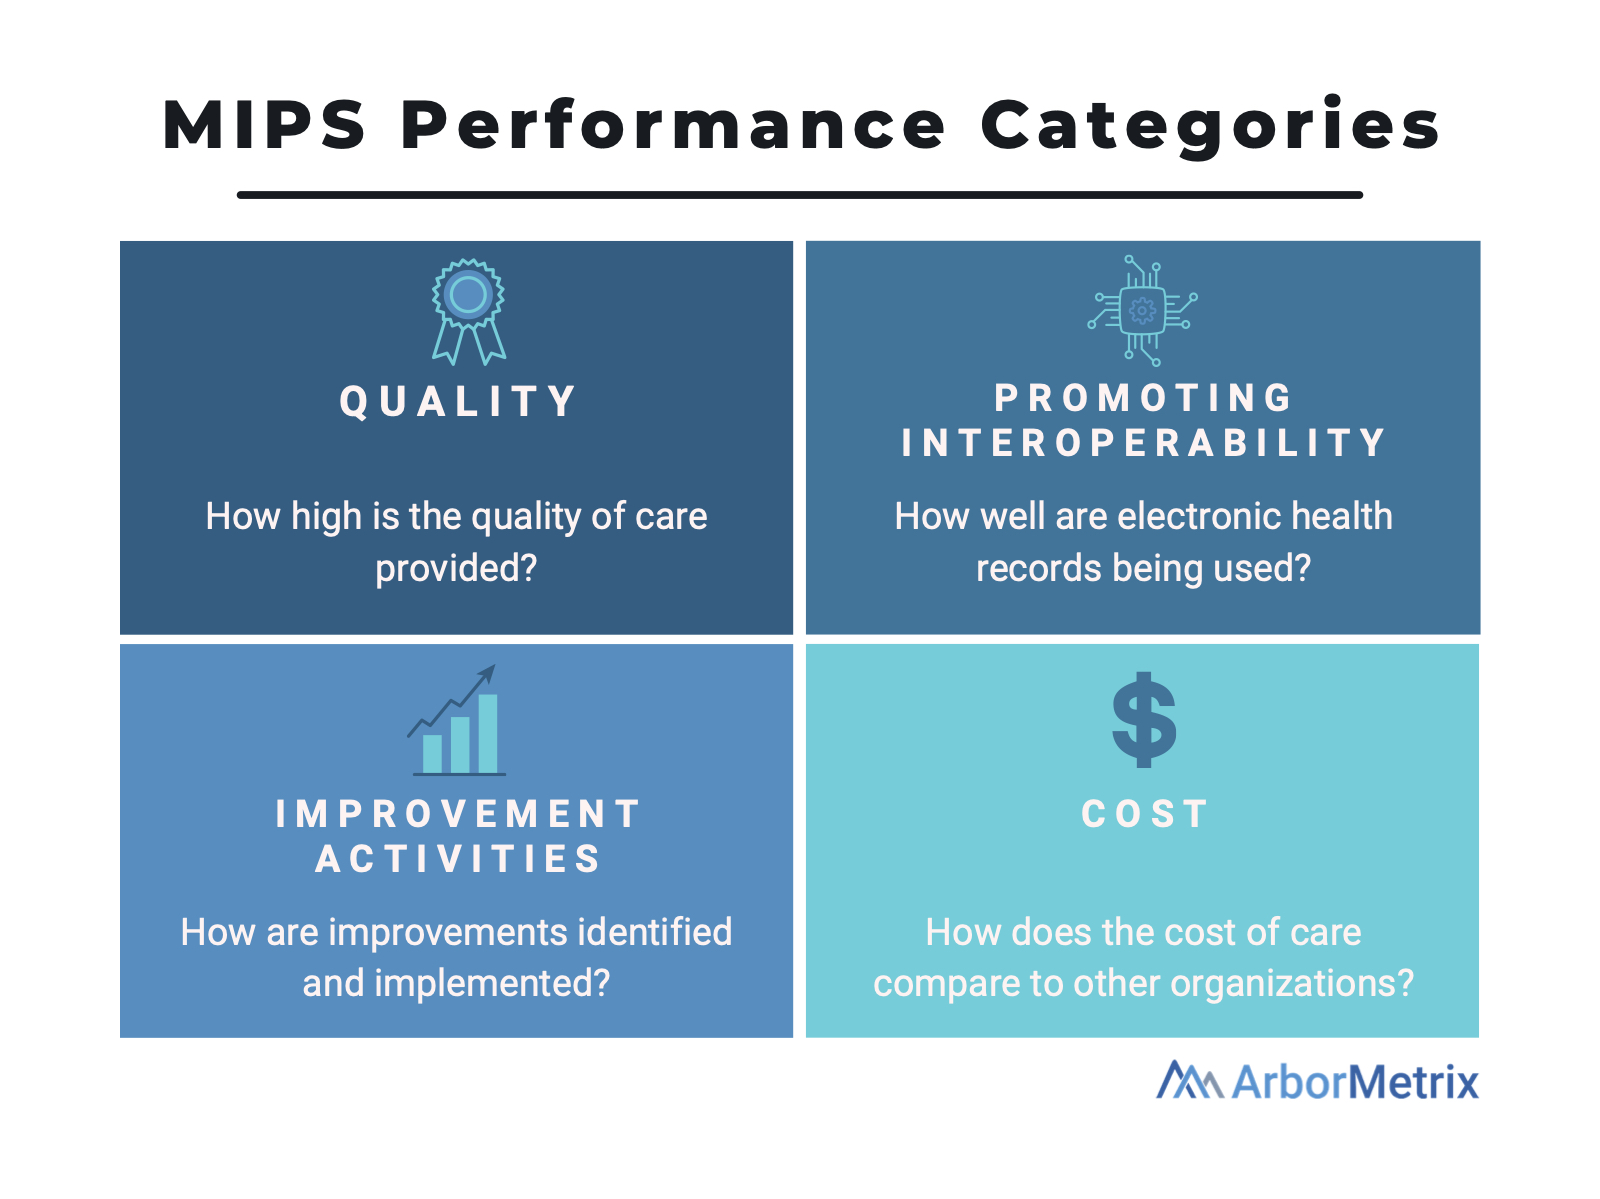 MIPS performance categories